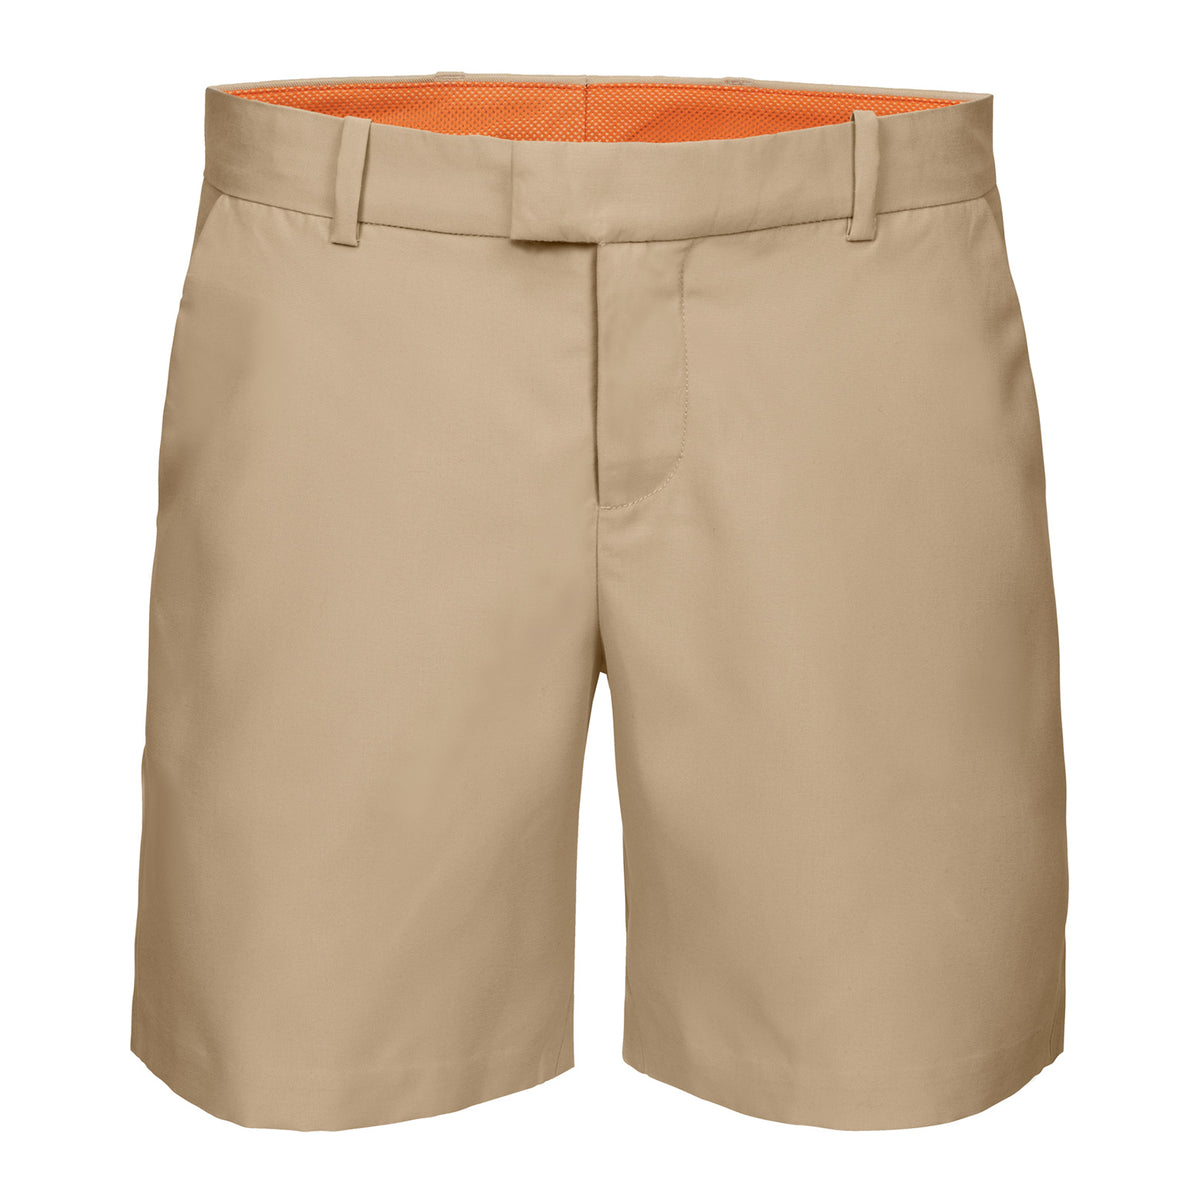 Breeze Classic Shorts - background::white,variant::Sand Beige